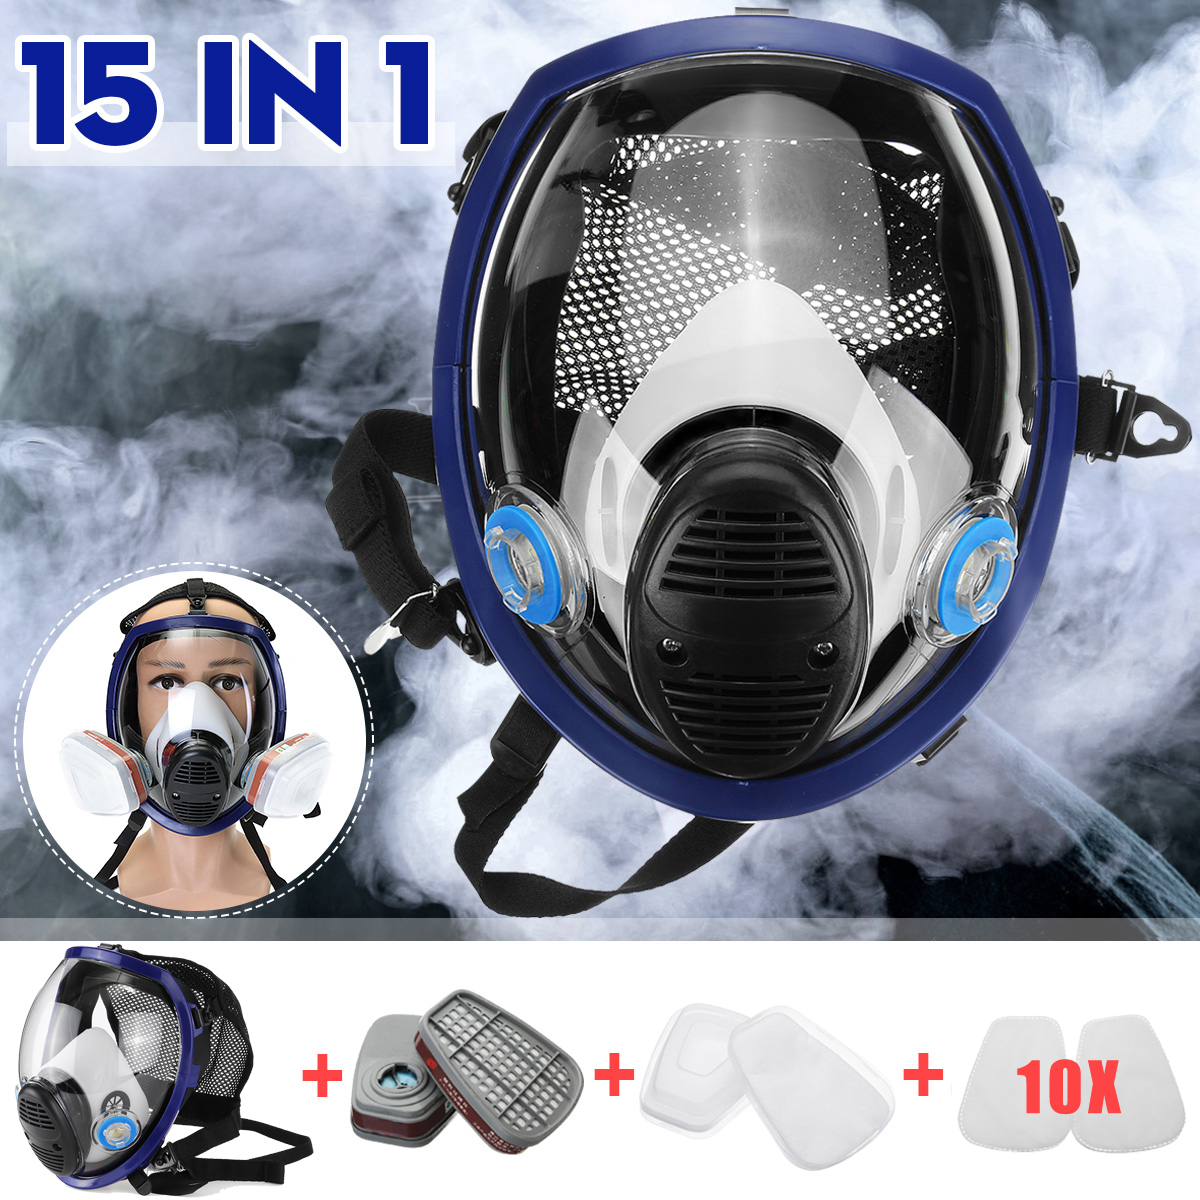 15 in 1 Large Size Full Face 6800 Gas Mask Facepiece Respirator Painting Spraying Chemical Laboratory